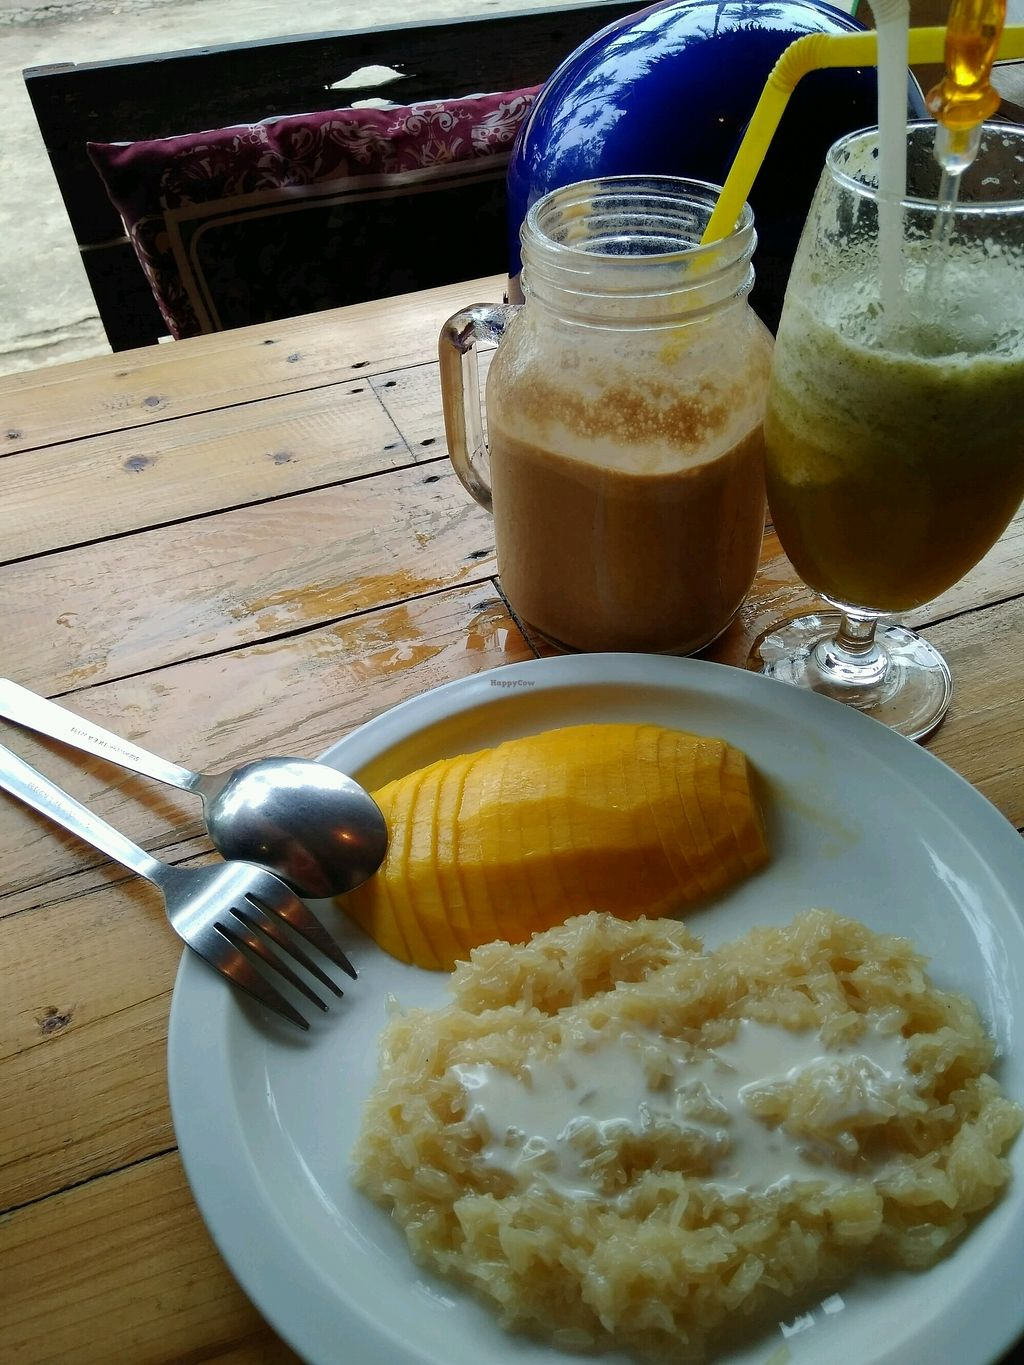 """Photo of Cafe del Sunshine  by <a href=""""/members/profile/vegadodo"""">vegadodo</a> <br/>The best coffee banana veganized shake ever  <br/> March 30, 2018  - <a href='/contact/abuse/image/93024/378262'>Report</a>"""